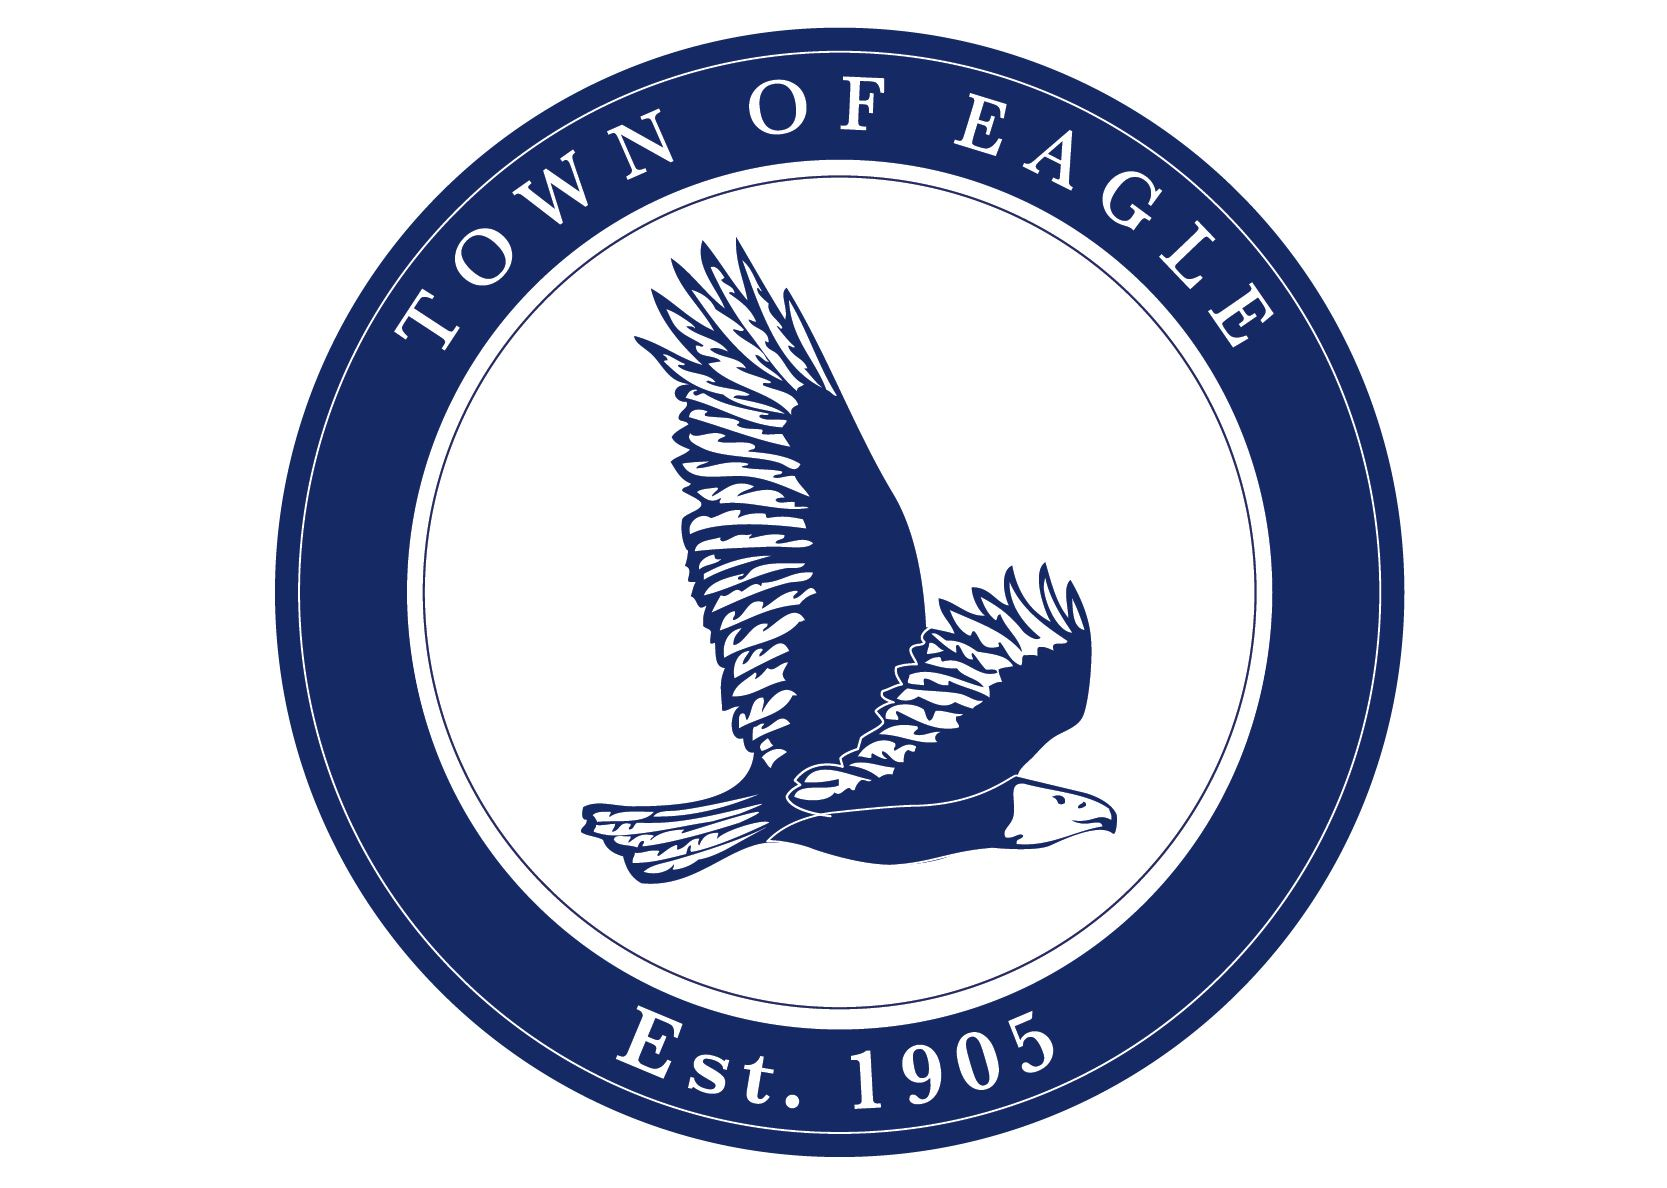 town-of-eagle